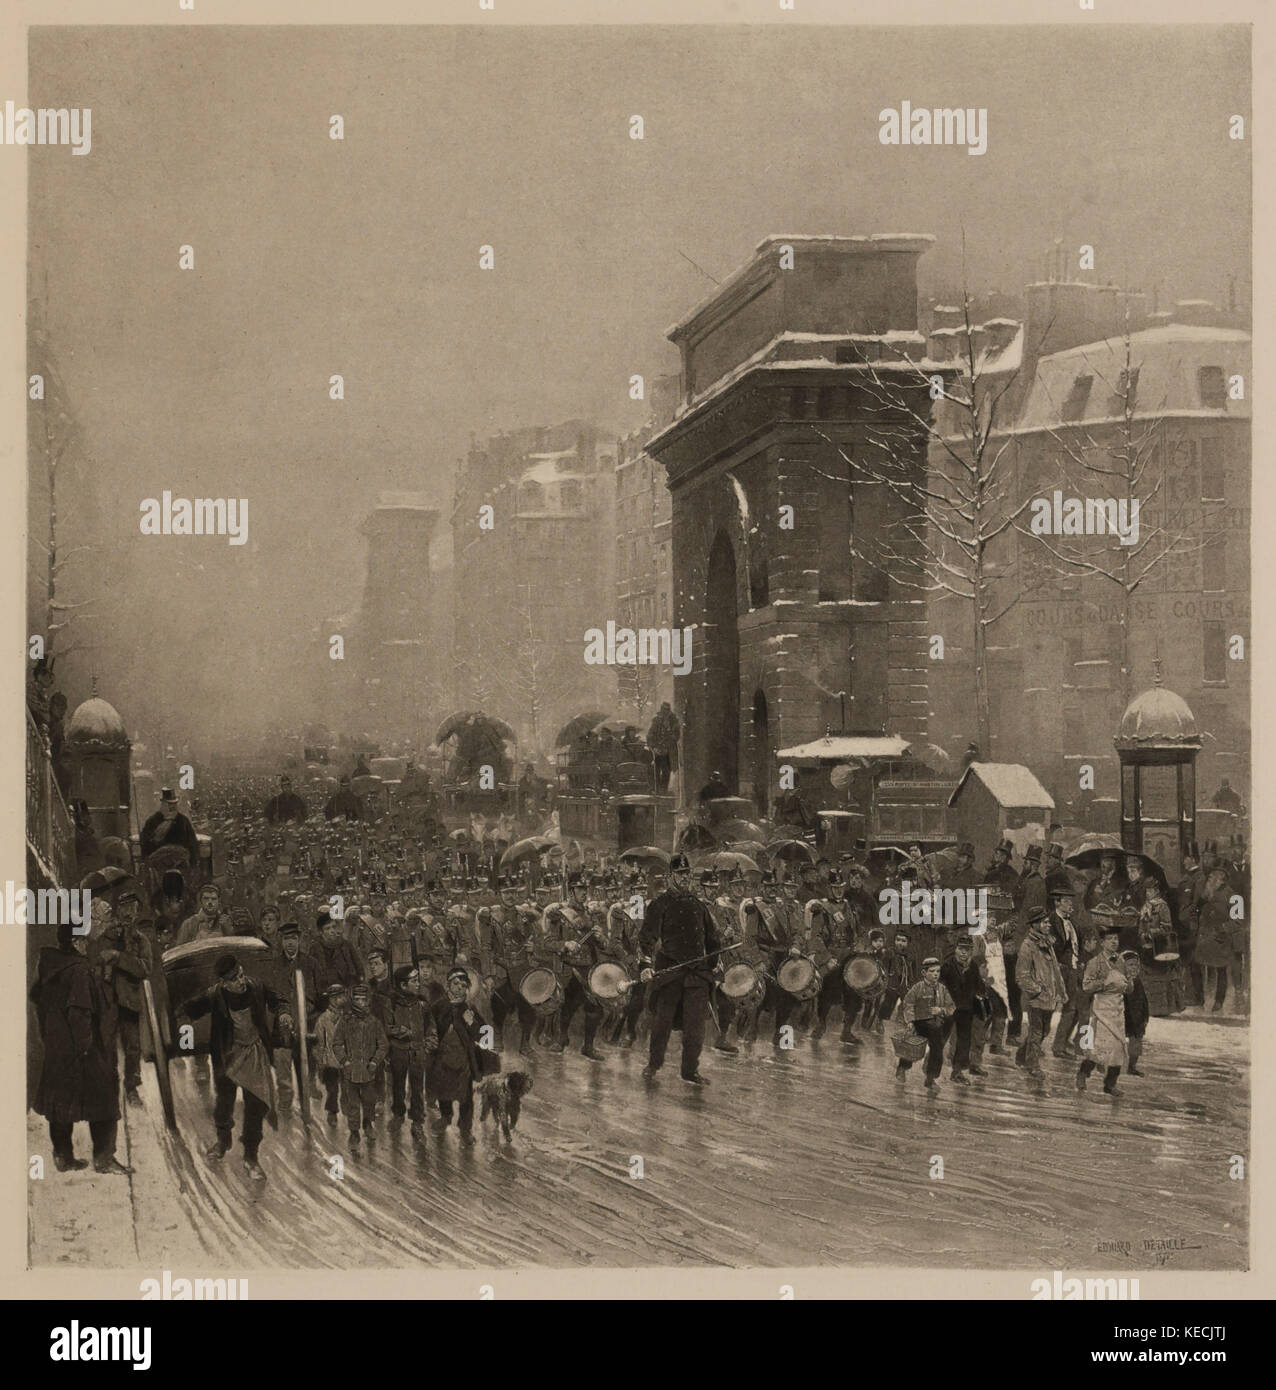 The Passing Regiment, Photogravure Print from the Original Painting by, Edouard Detaille, The Masterpieces of French - Stock Image